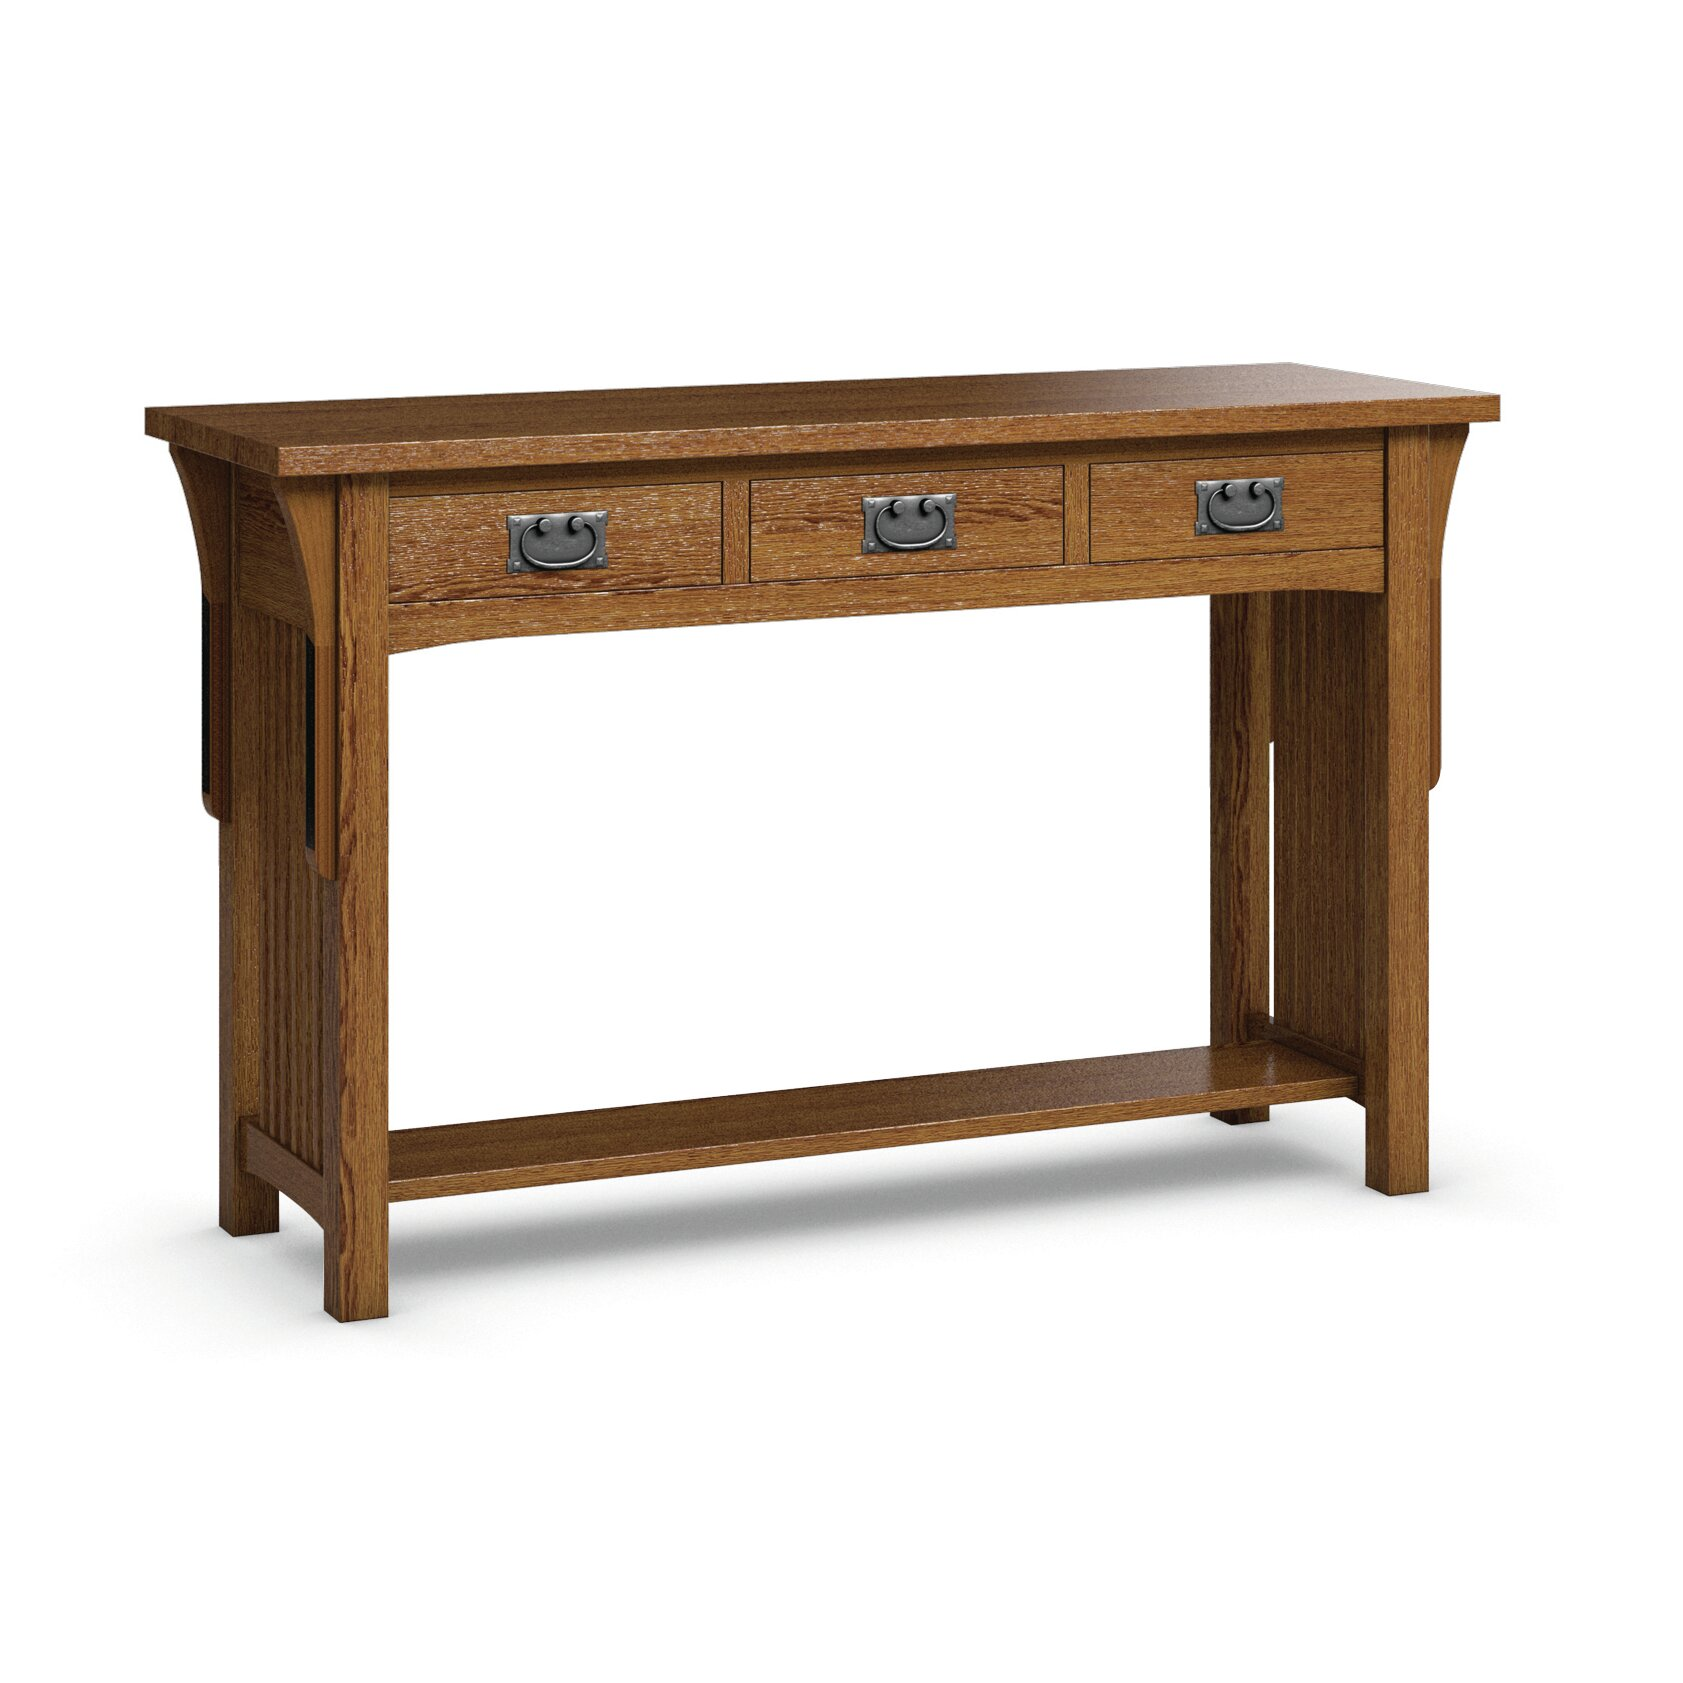 Caravel FLW Sofa Table With Three Drawers & Reviews